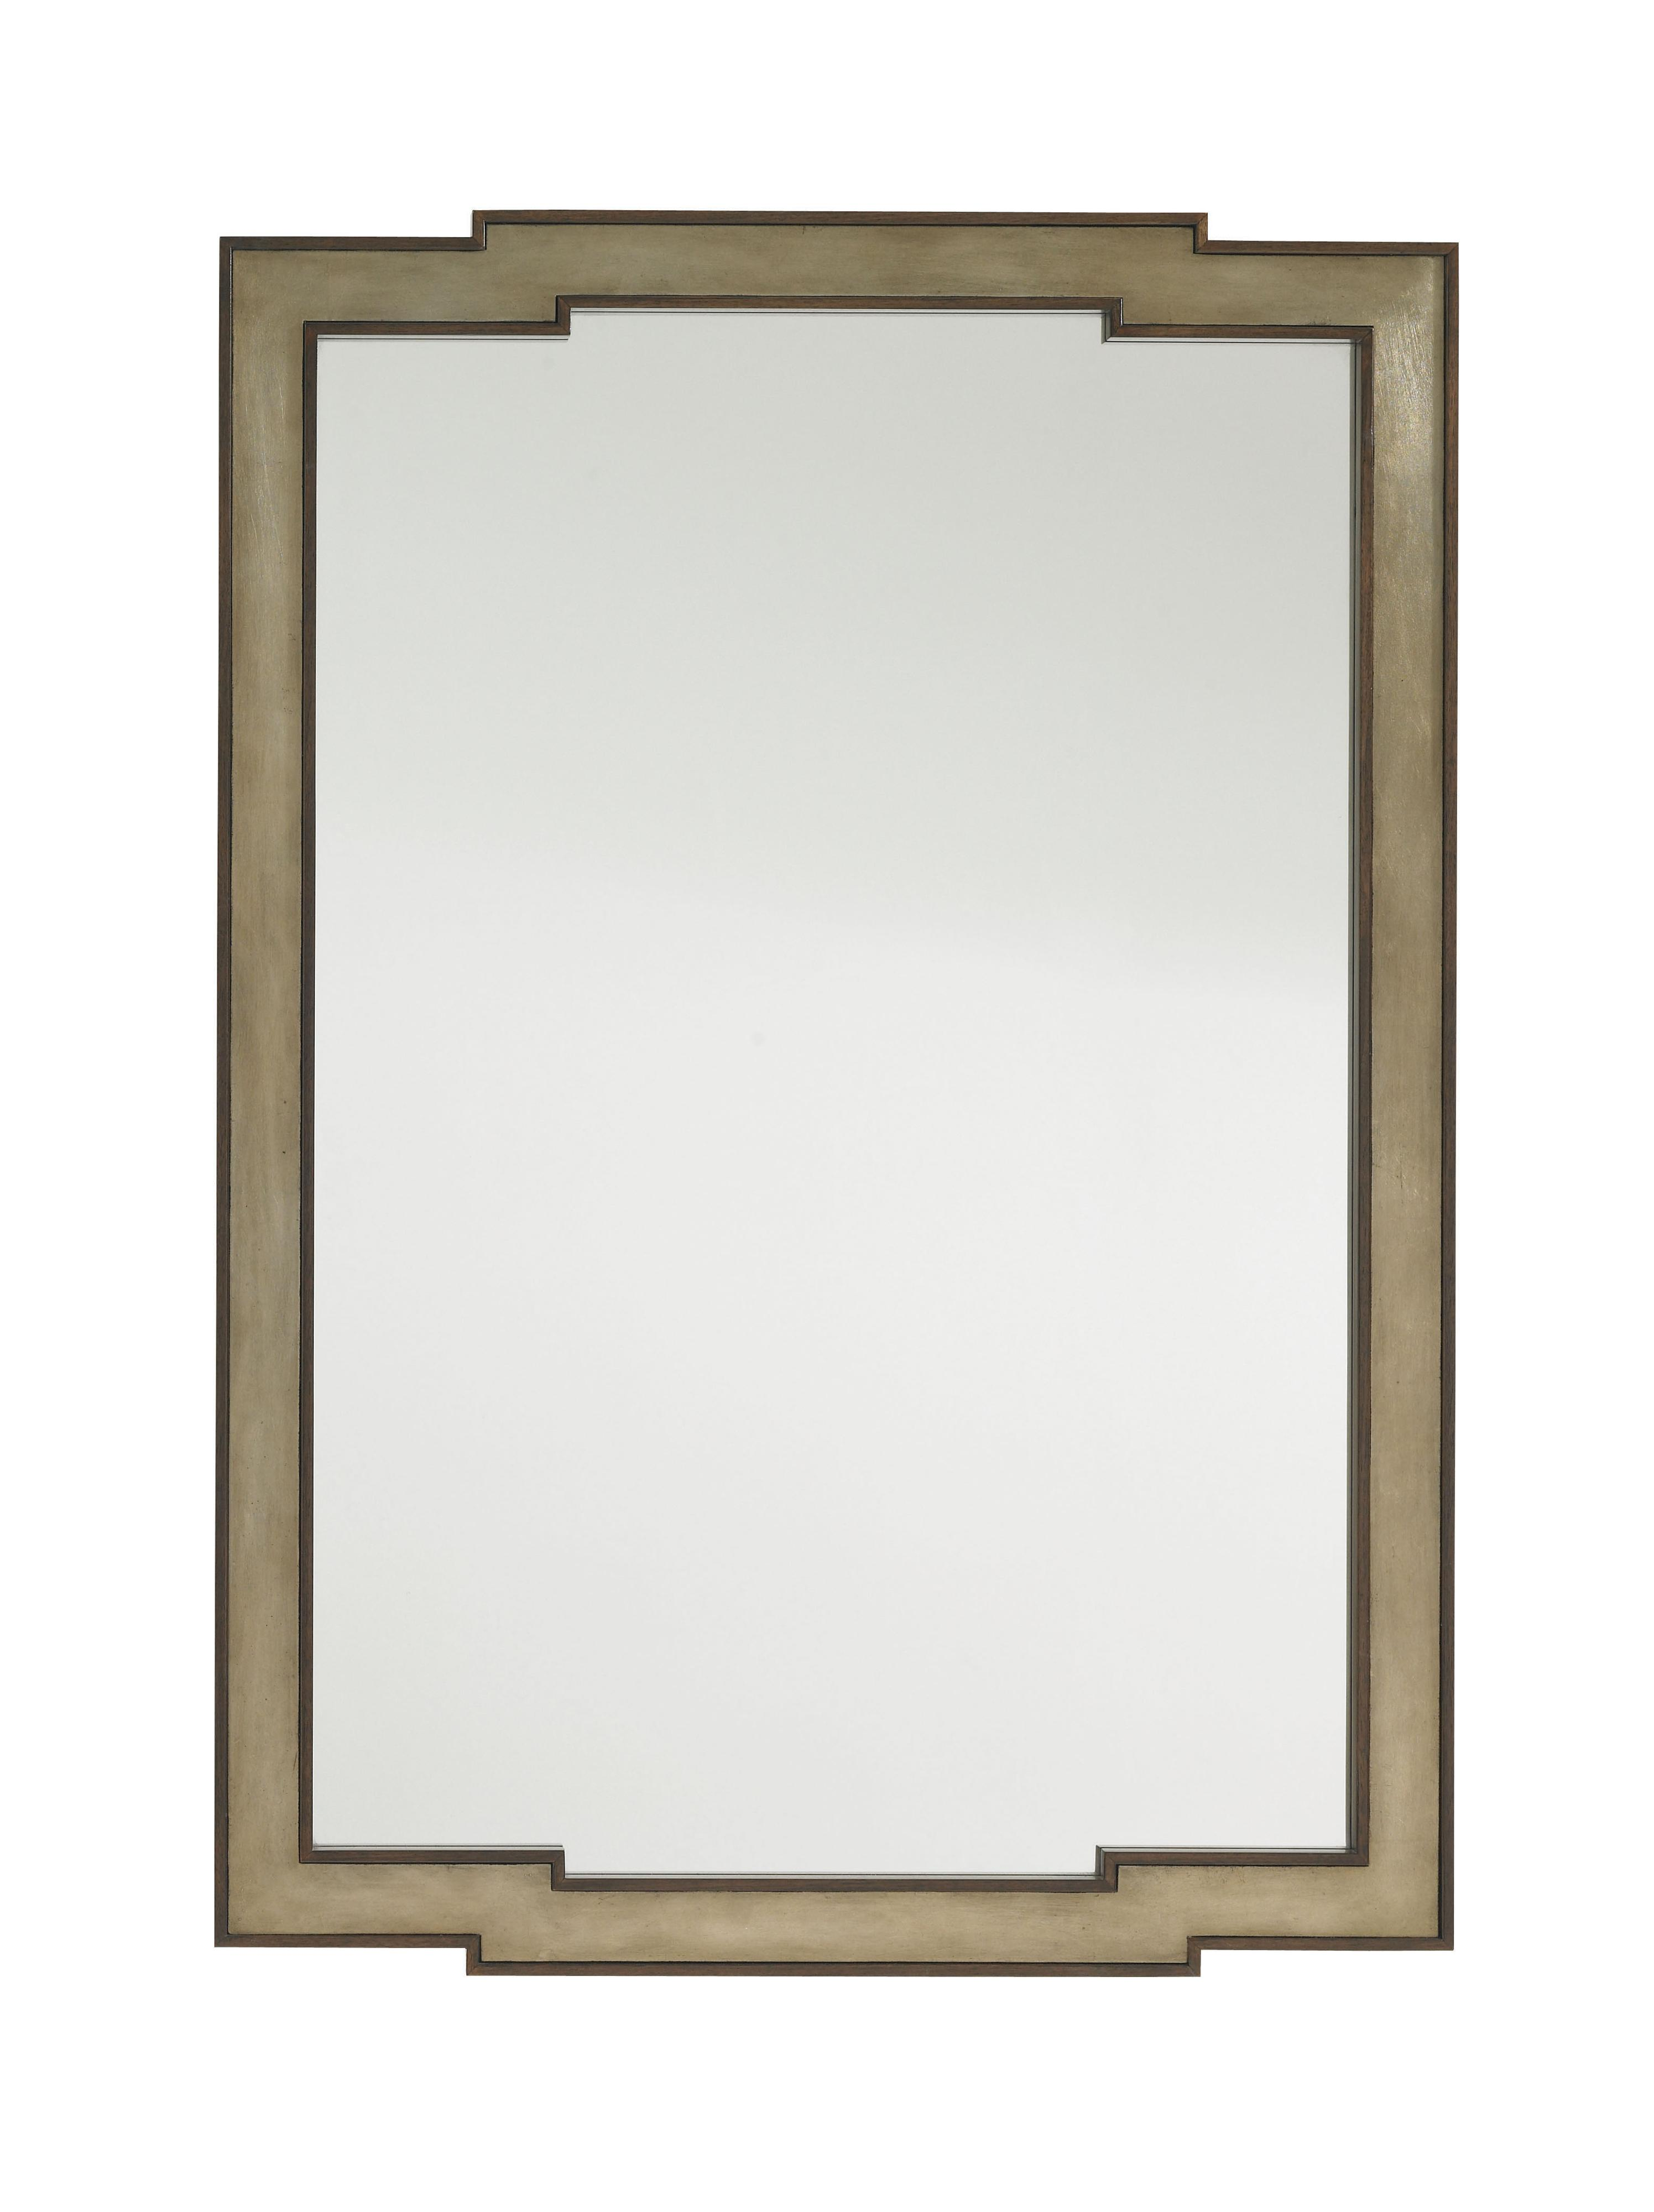 Tower Place Glencoe Mirror by Lexington at Baer's Furniture